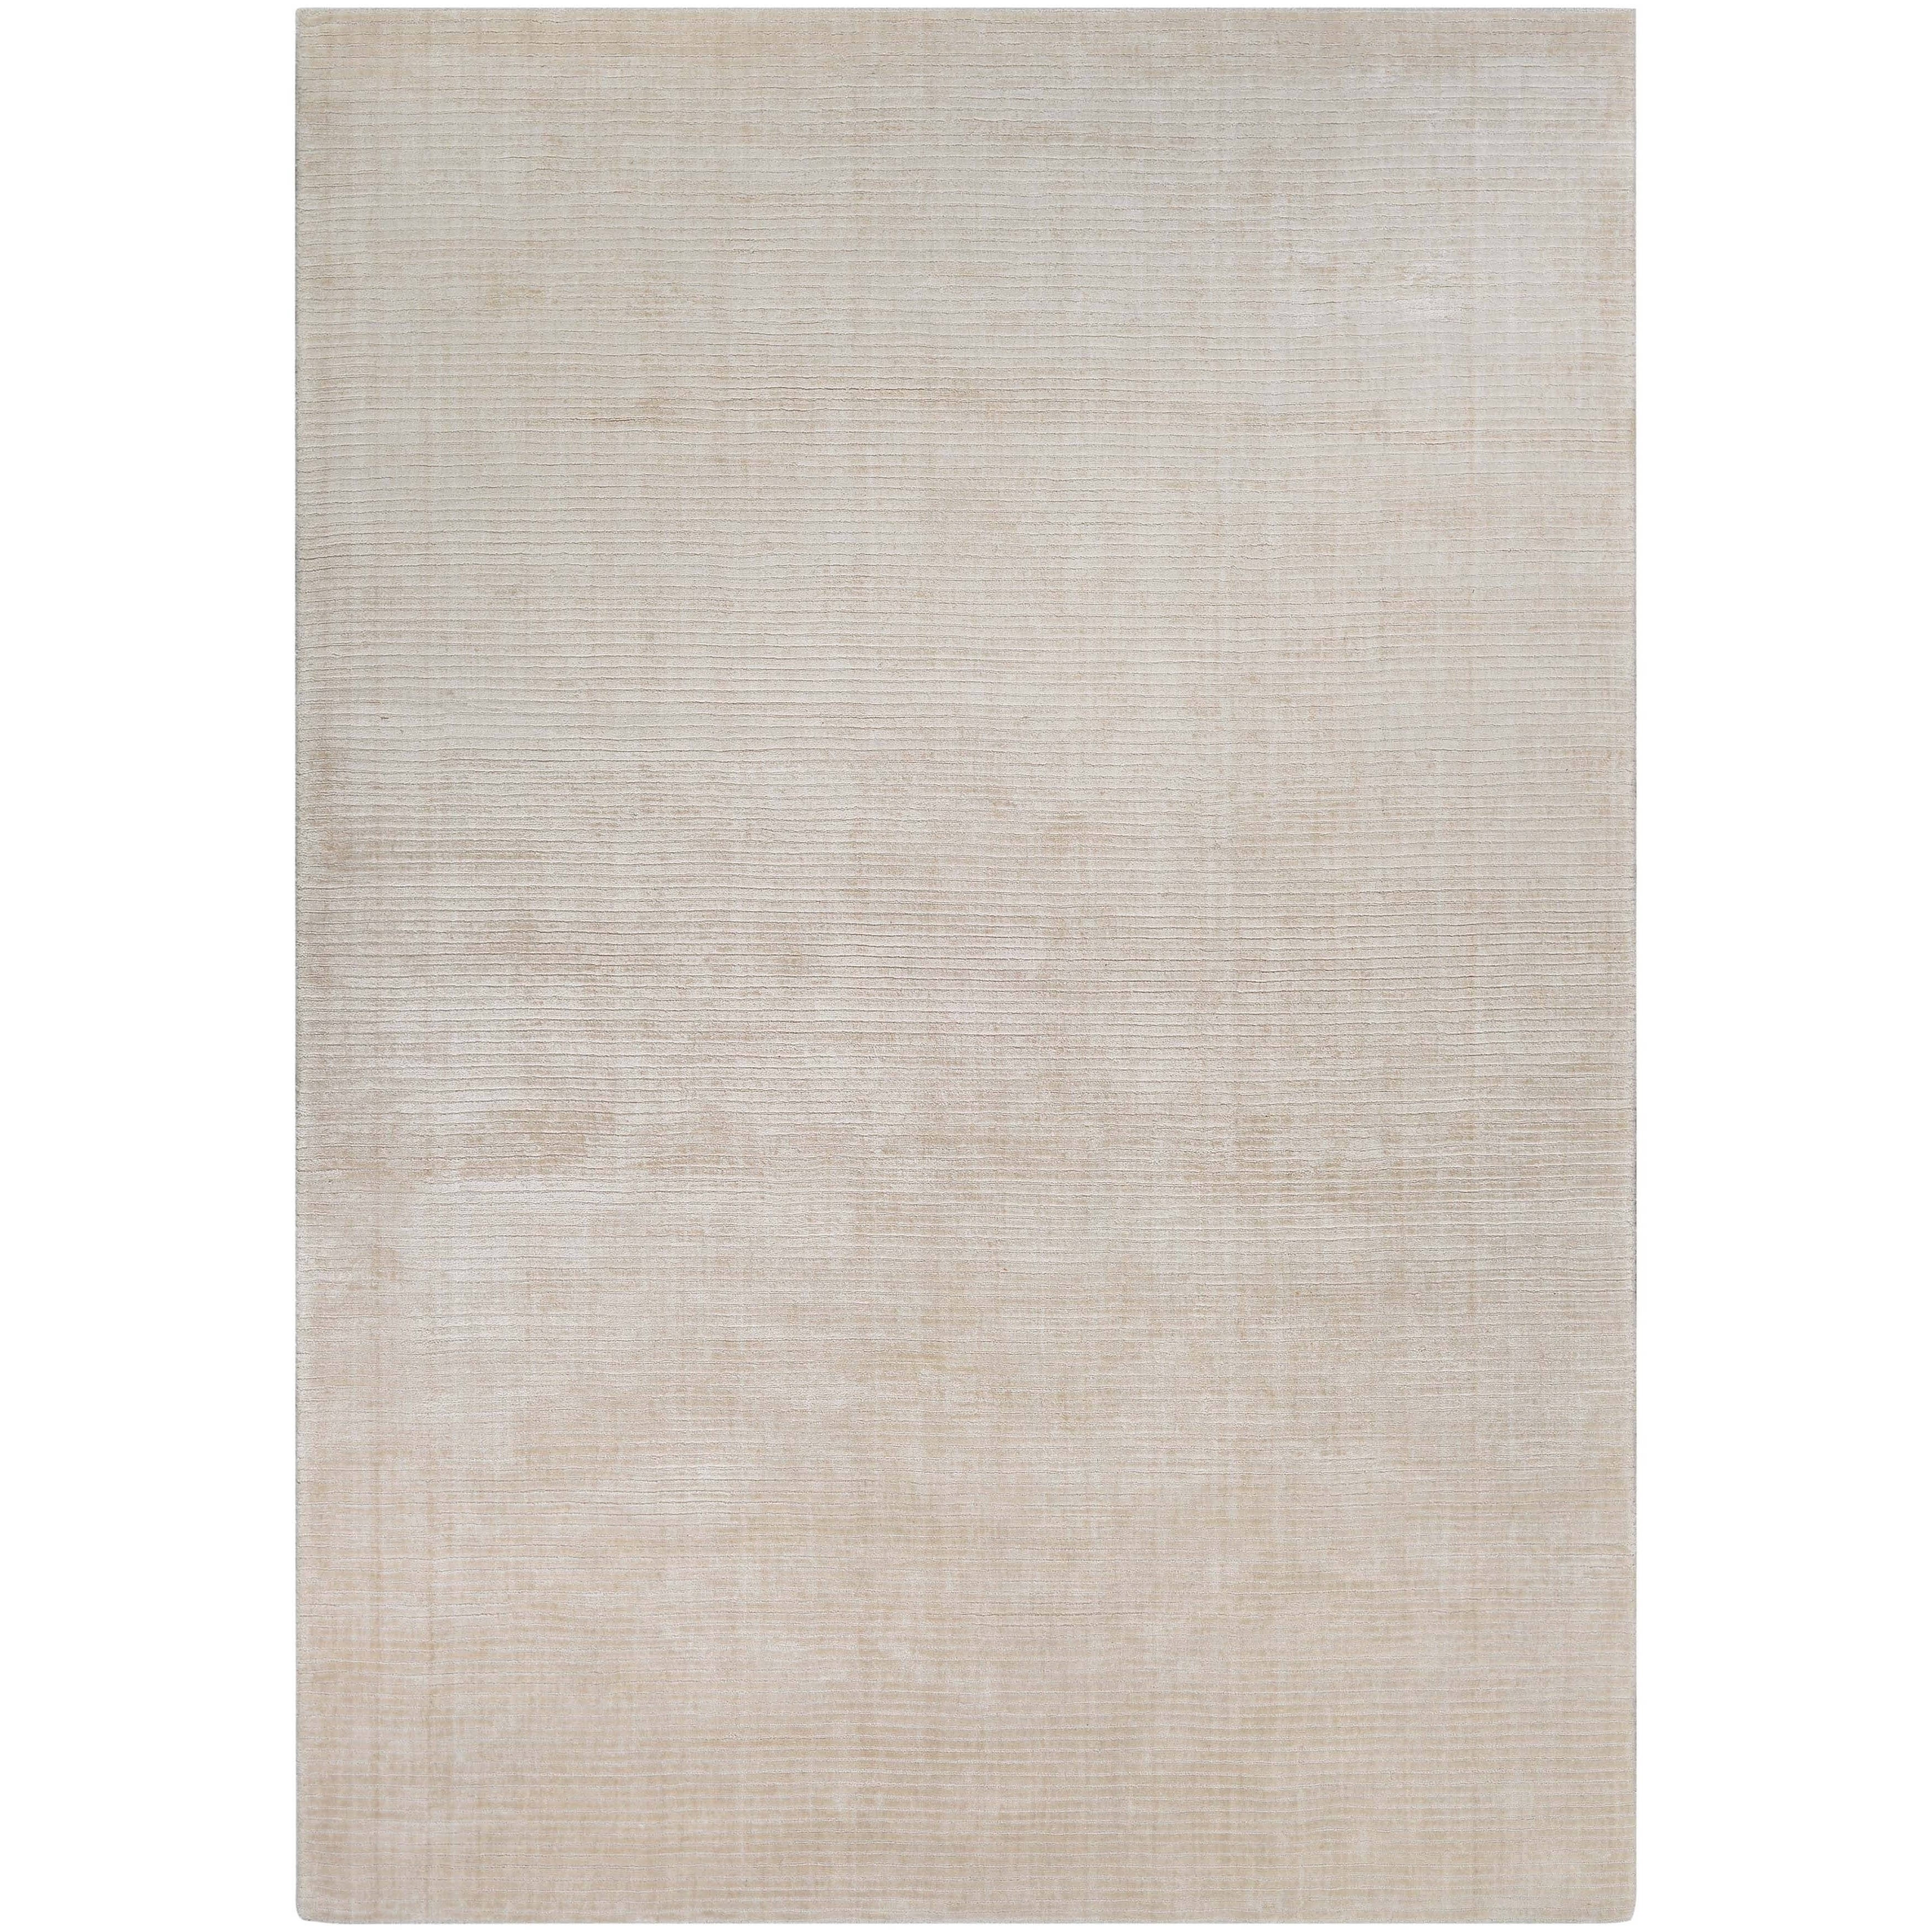 Couristan Royals Linea/Straw Area Rug - 5'3 x 7'6 (Size 5...